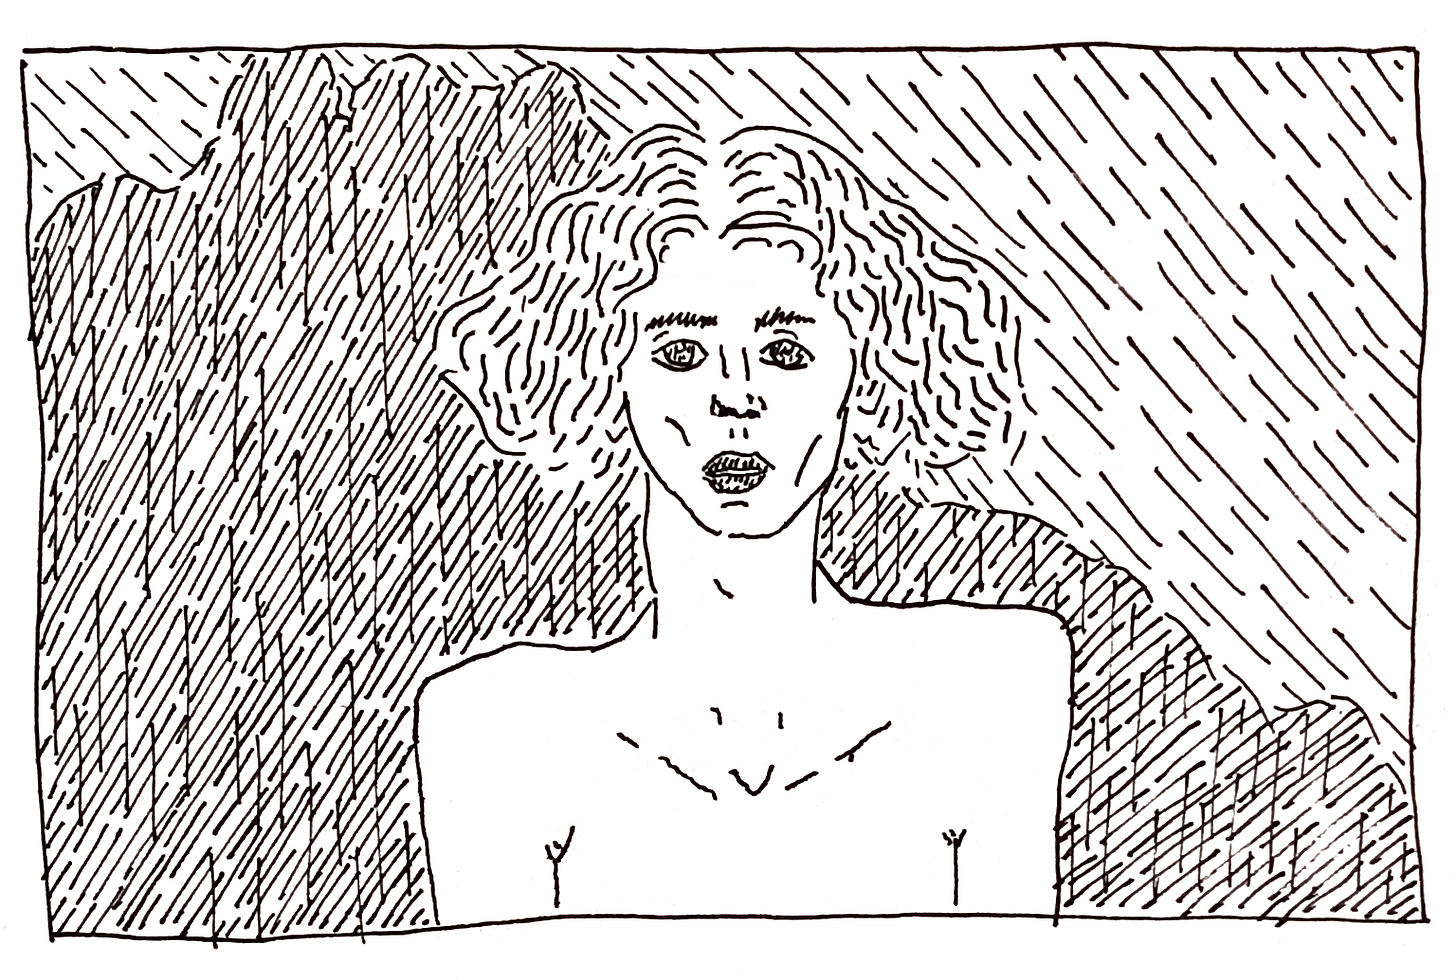 a black and white line drawing of the image of SOPHIE above, drawn by Leah. the sky and SOPHIE's hair are rendered into a torrent of lines and squiggles